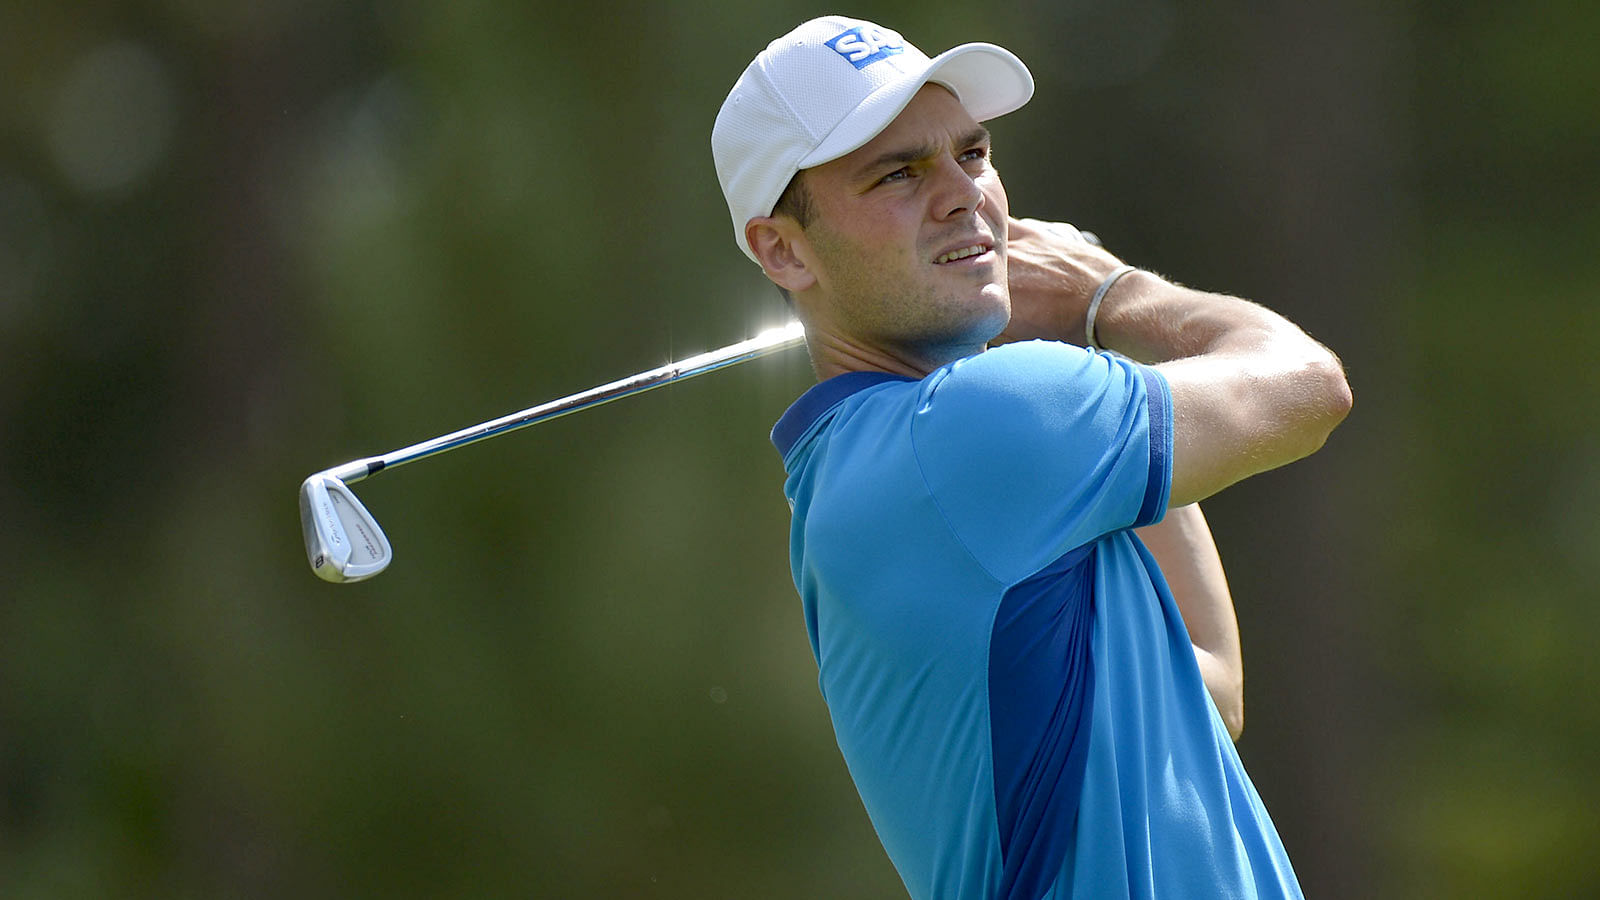 German golfer Martin Kaymer  wins PGA Grand Slam